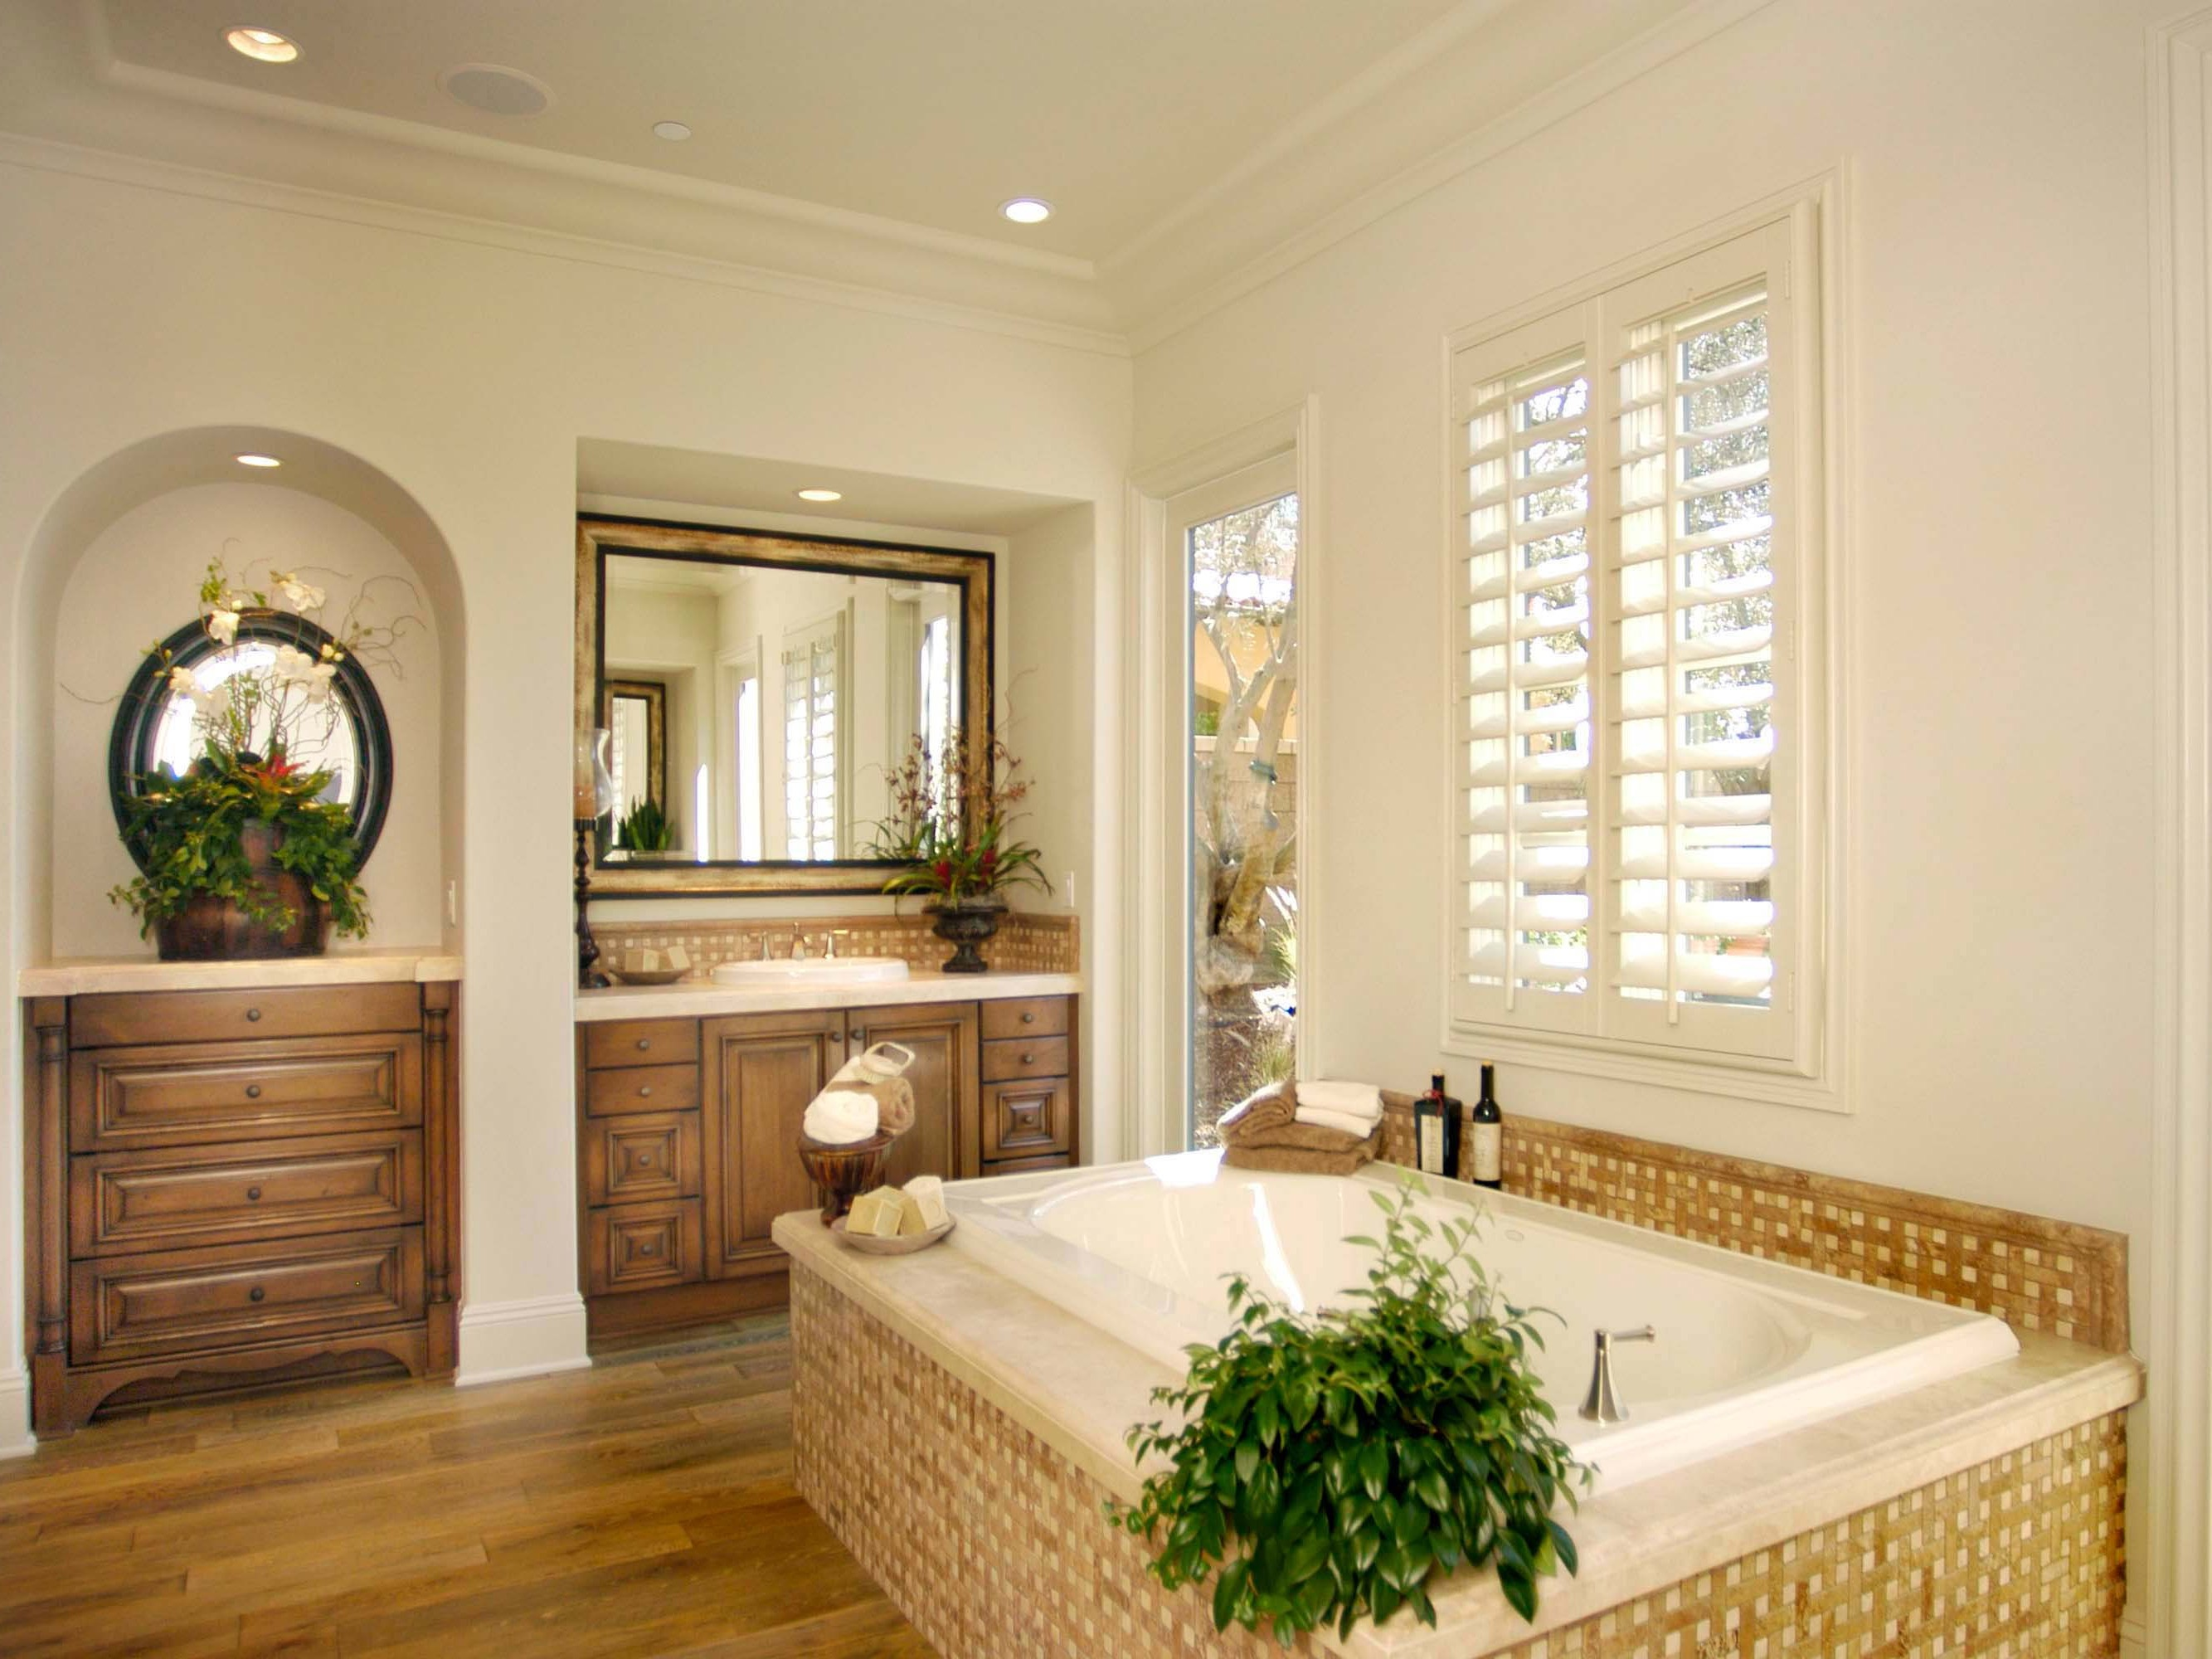 Classic bathroom interior design in elegant look 15033 for Cabana bathroom ideas